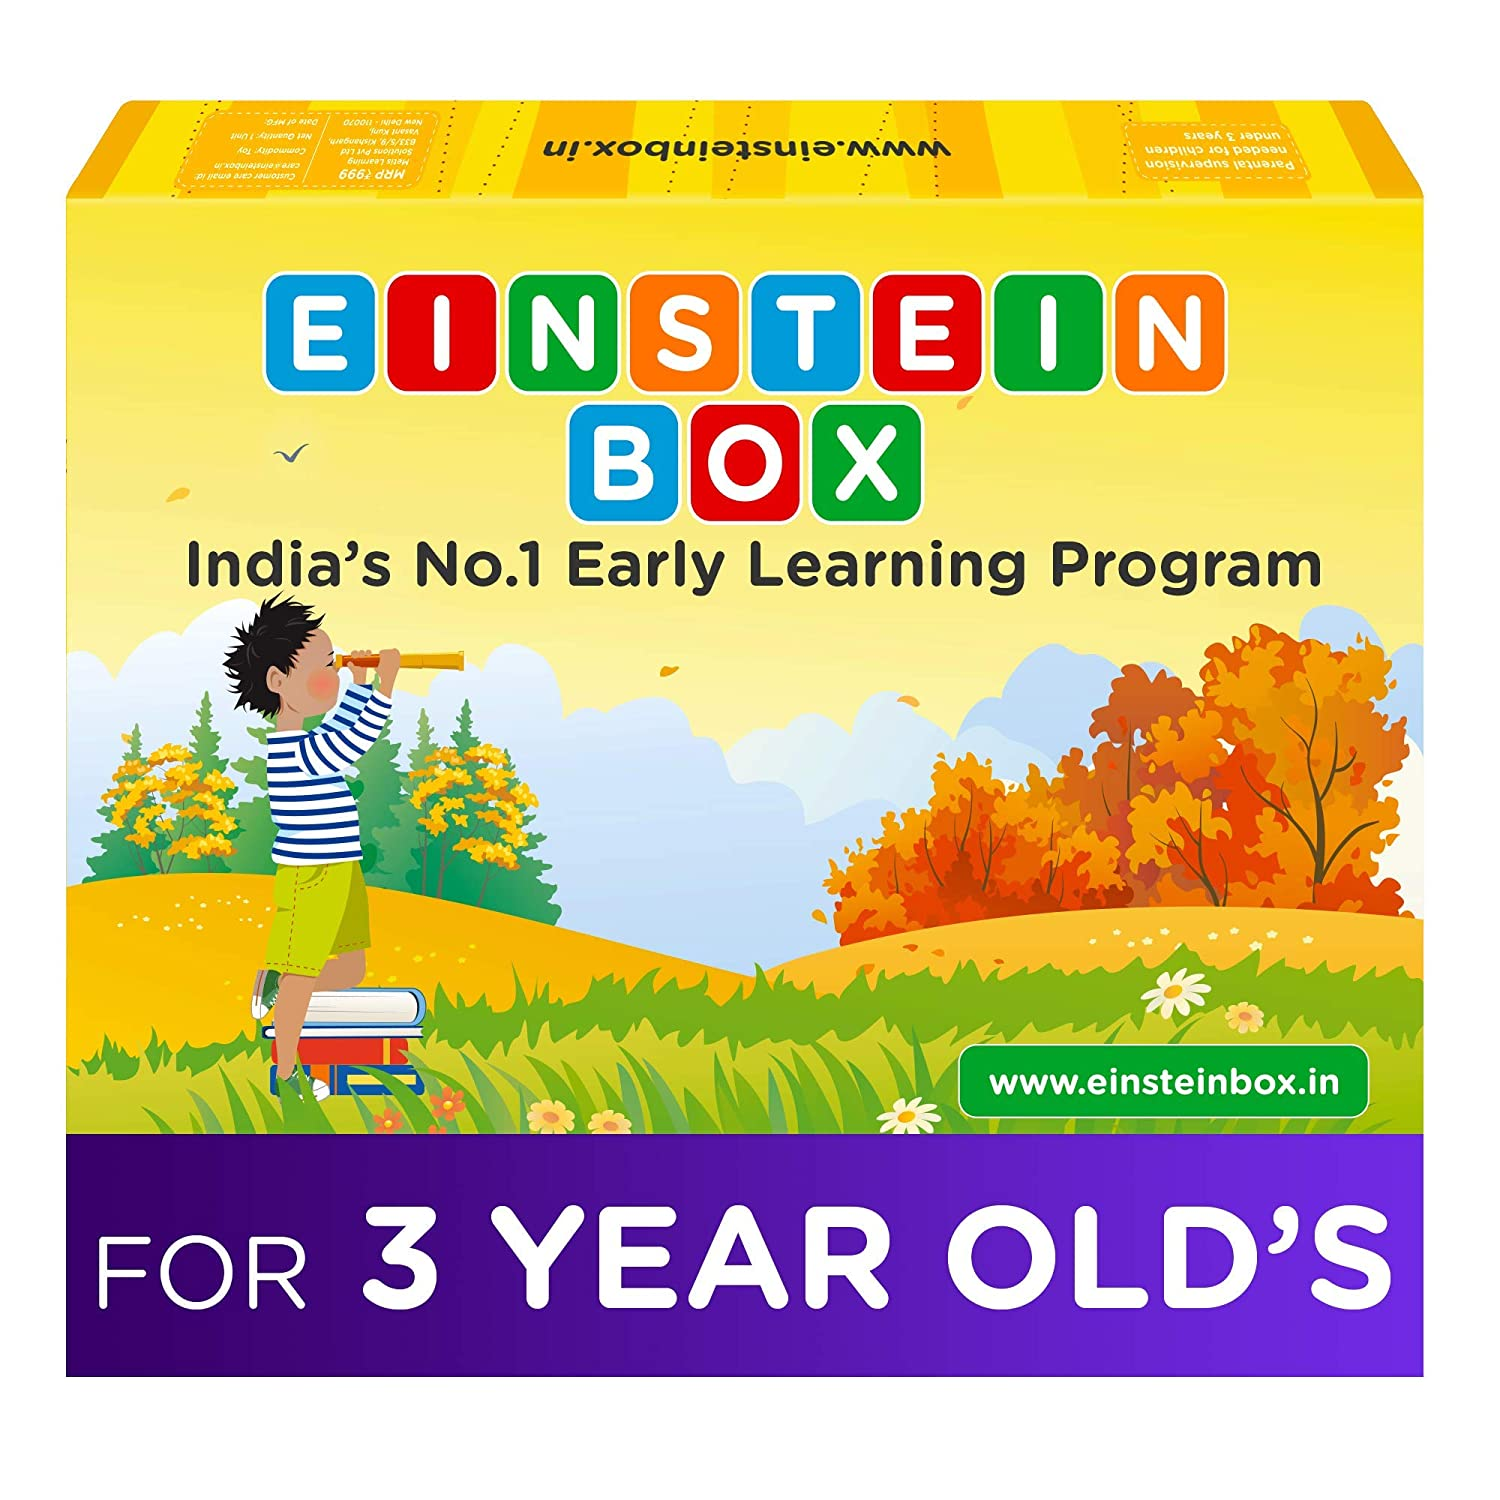 Einstein Box for 3 Year Old Baby Boys and Girls, Learning and Educational Gift Pack of Toys, Games and Books, Apron